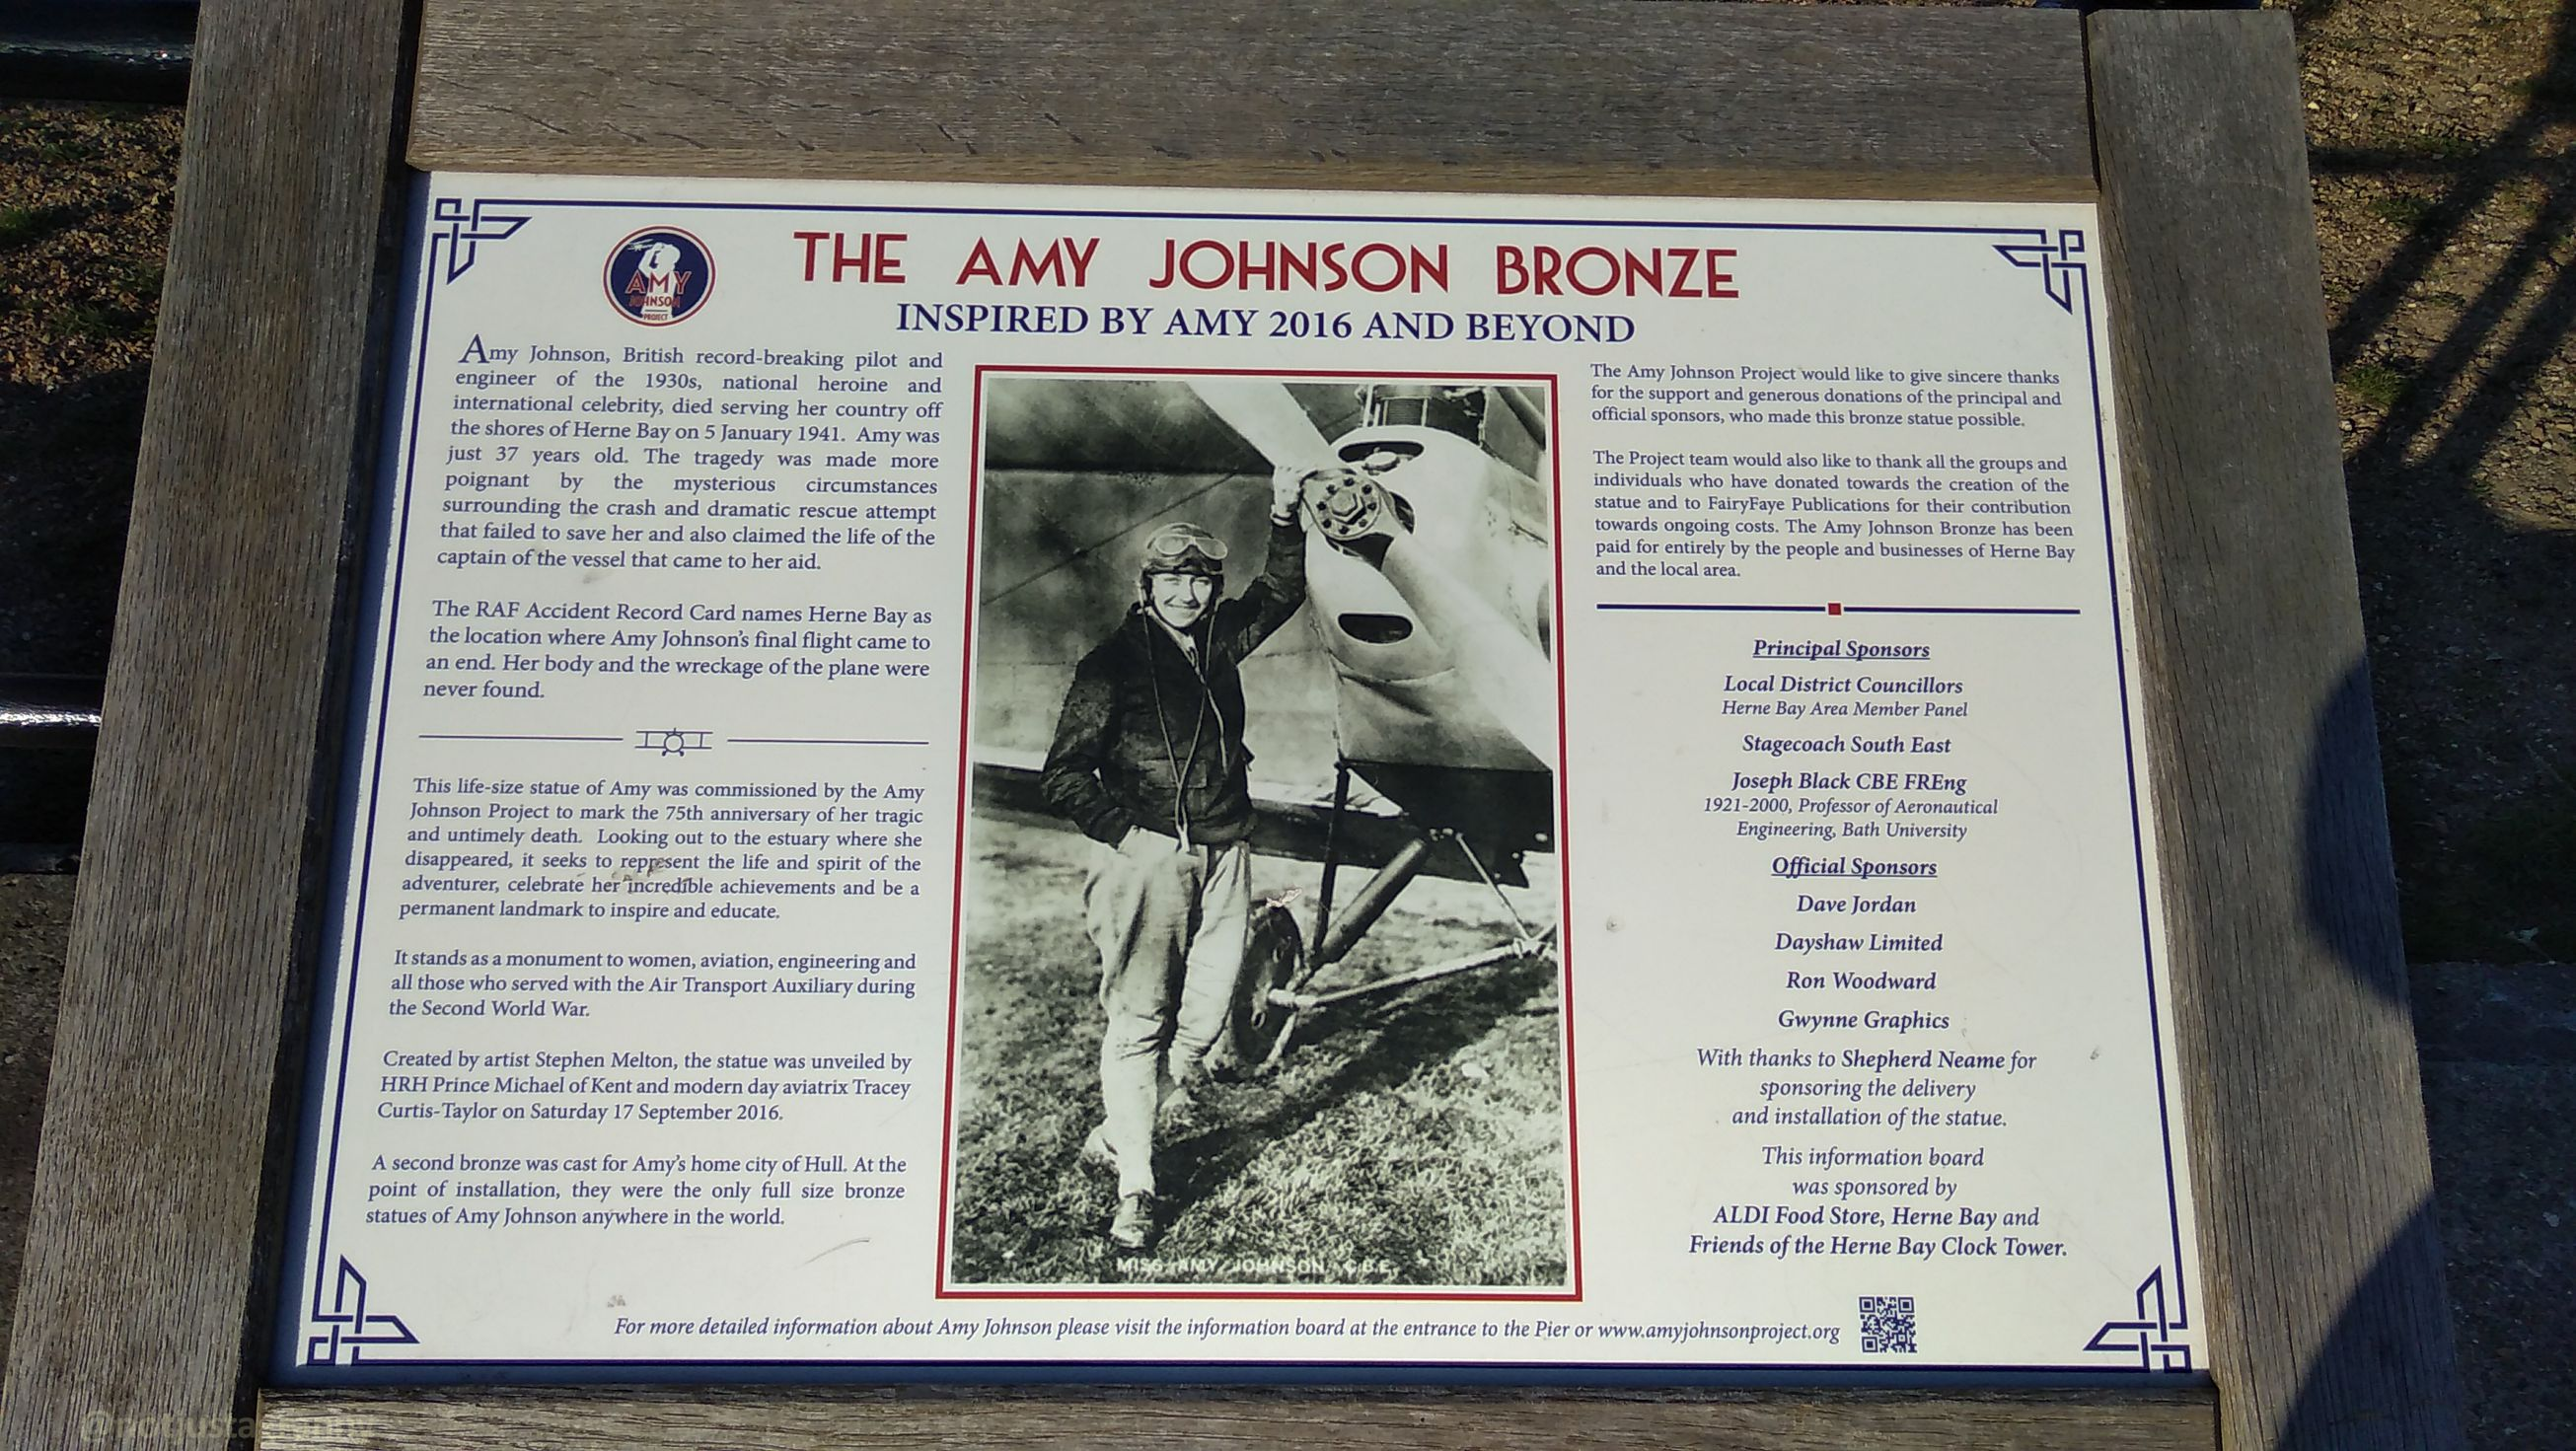 Amy Johnson bronze statue in Herne Bay